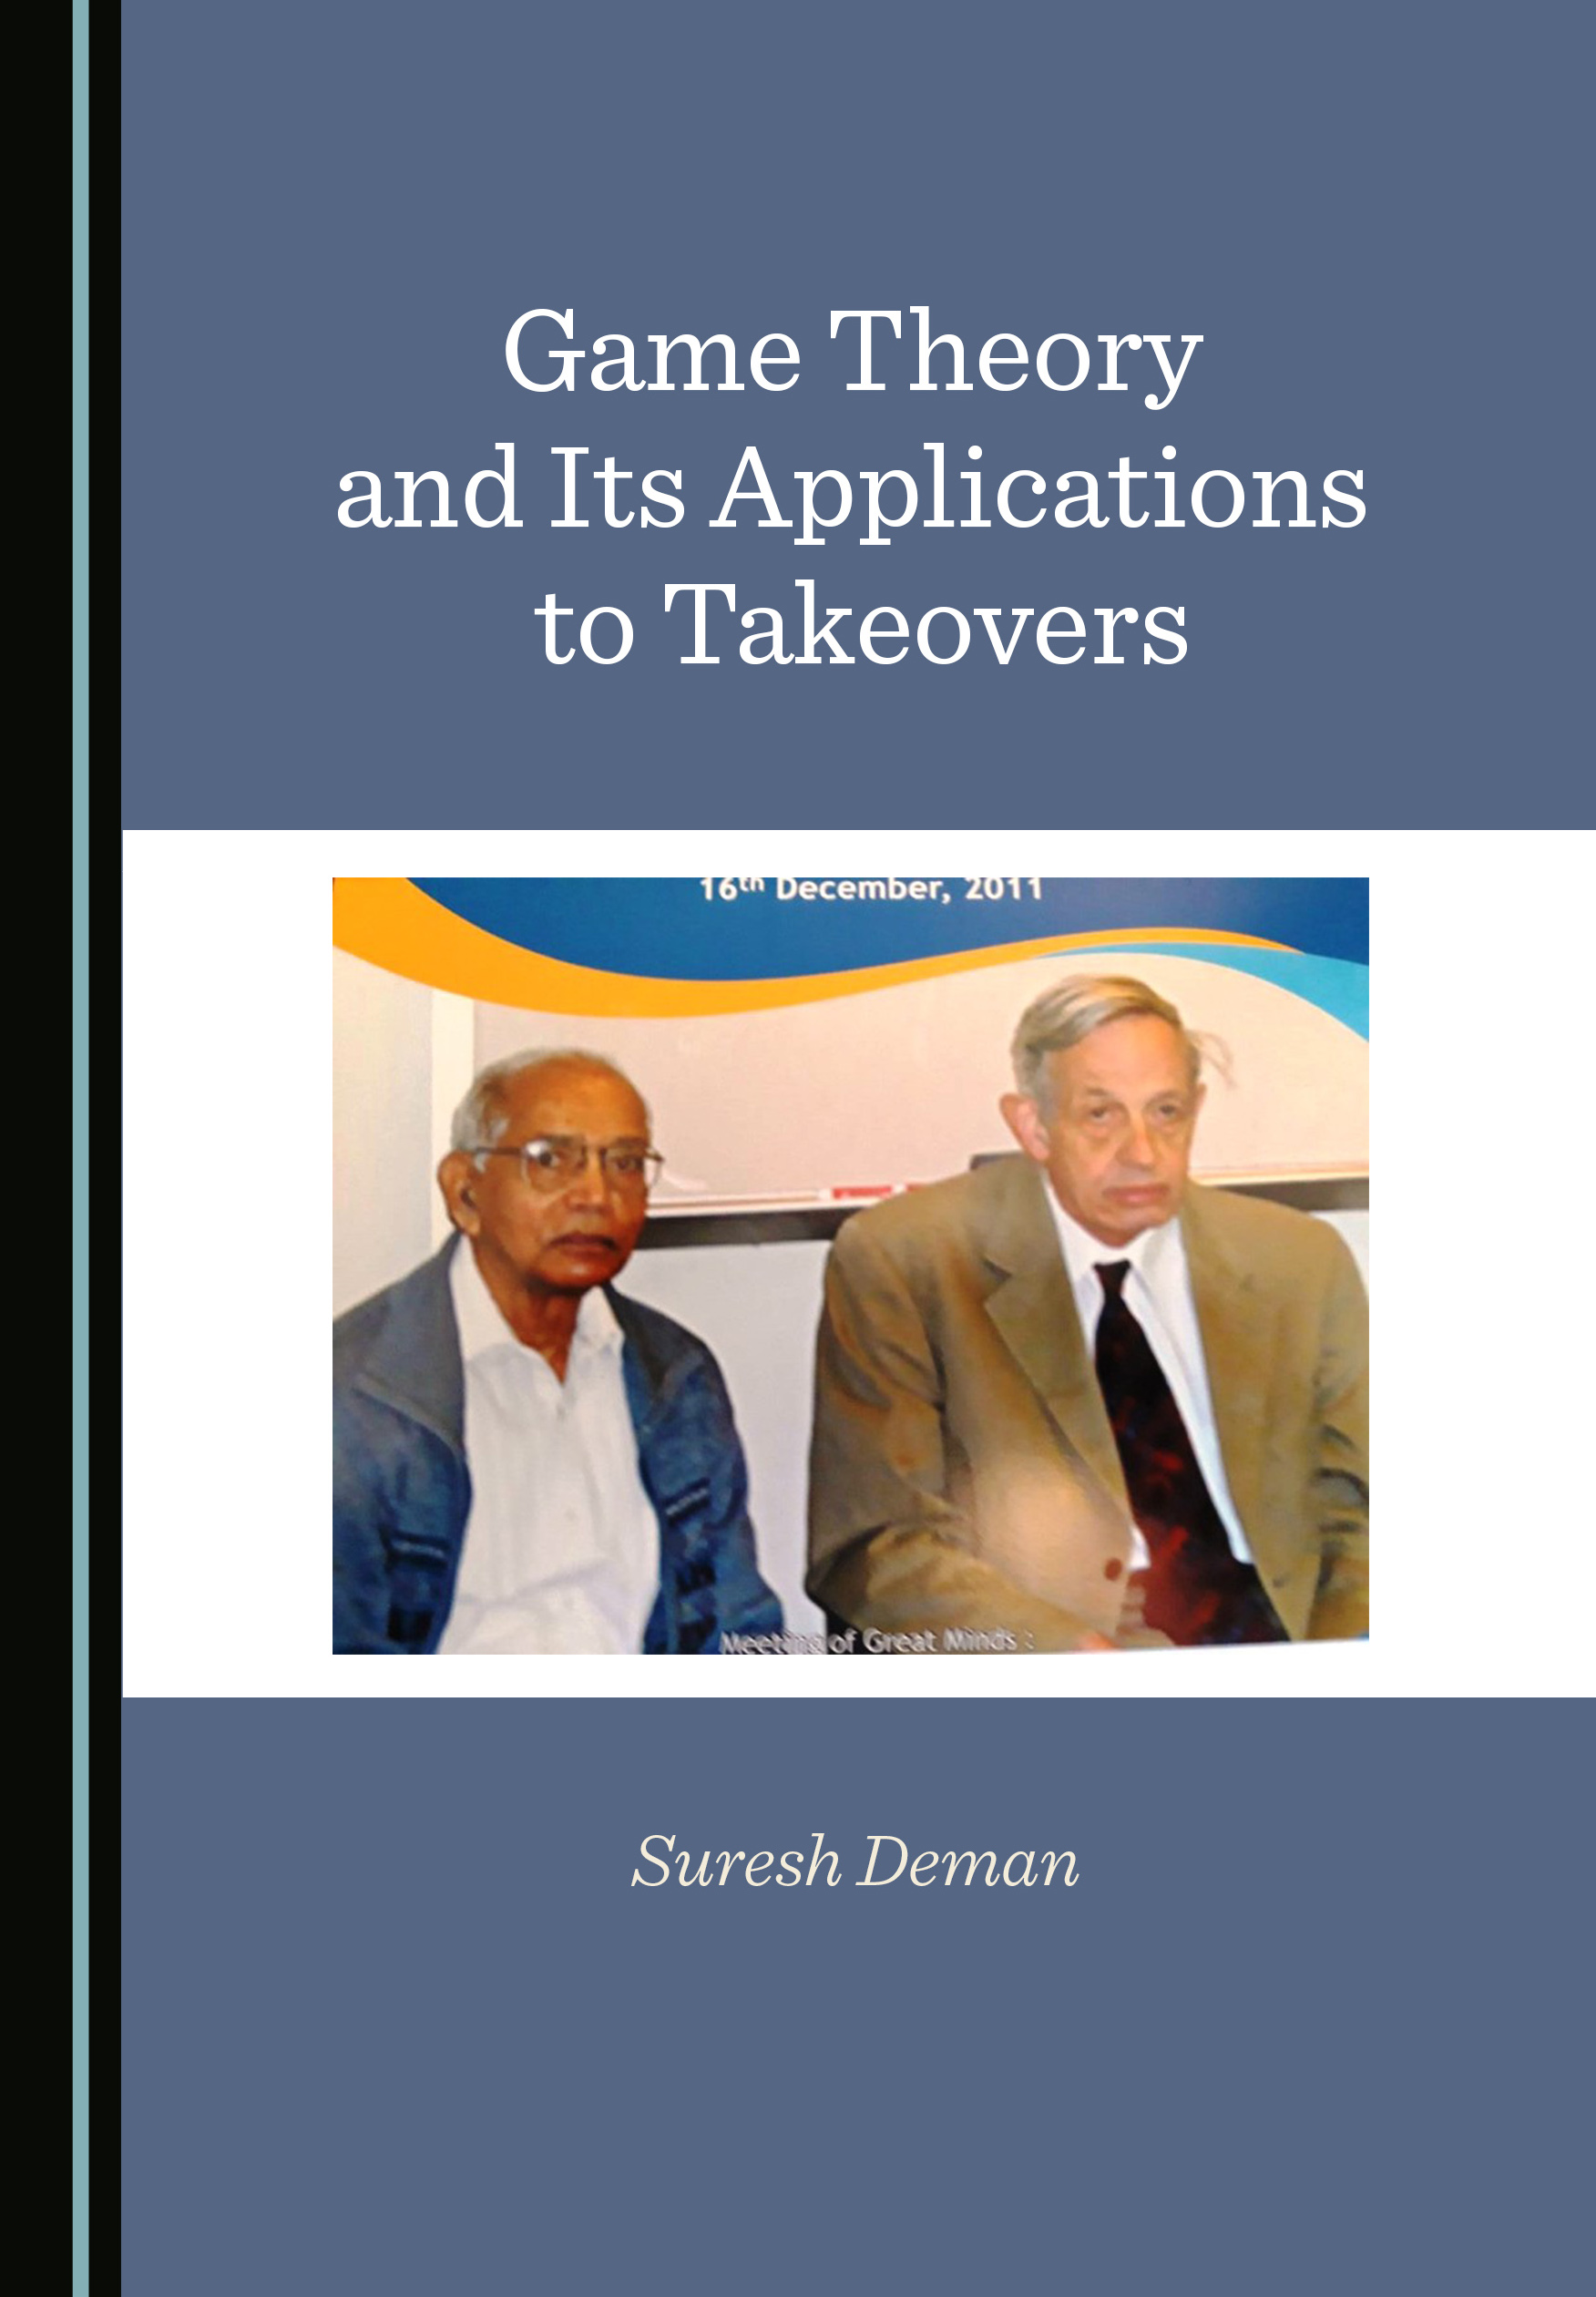 Game Theory and Its Applications to Takeovers